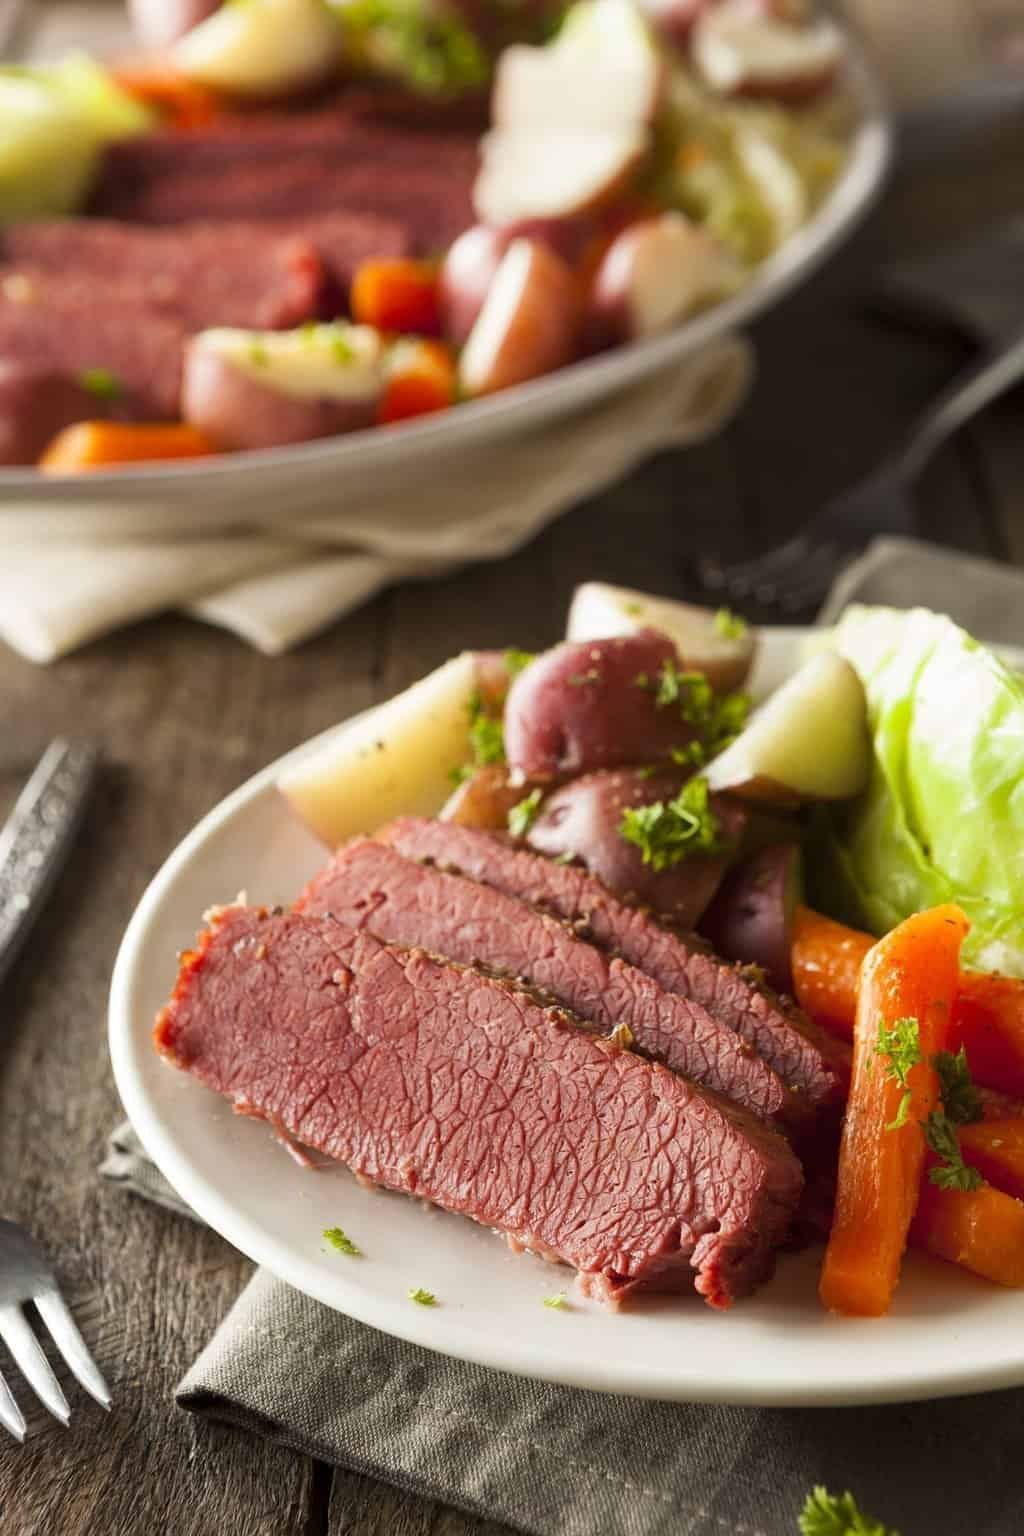 Homemade Corned Beef and Cabbage